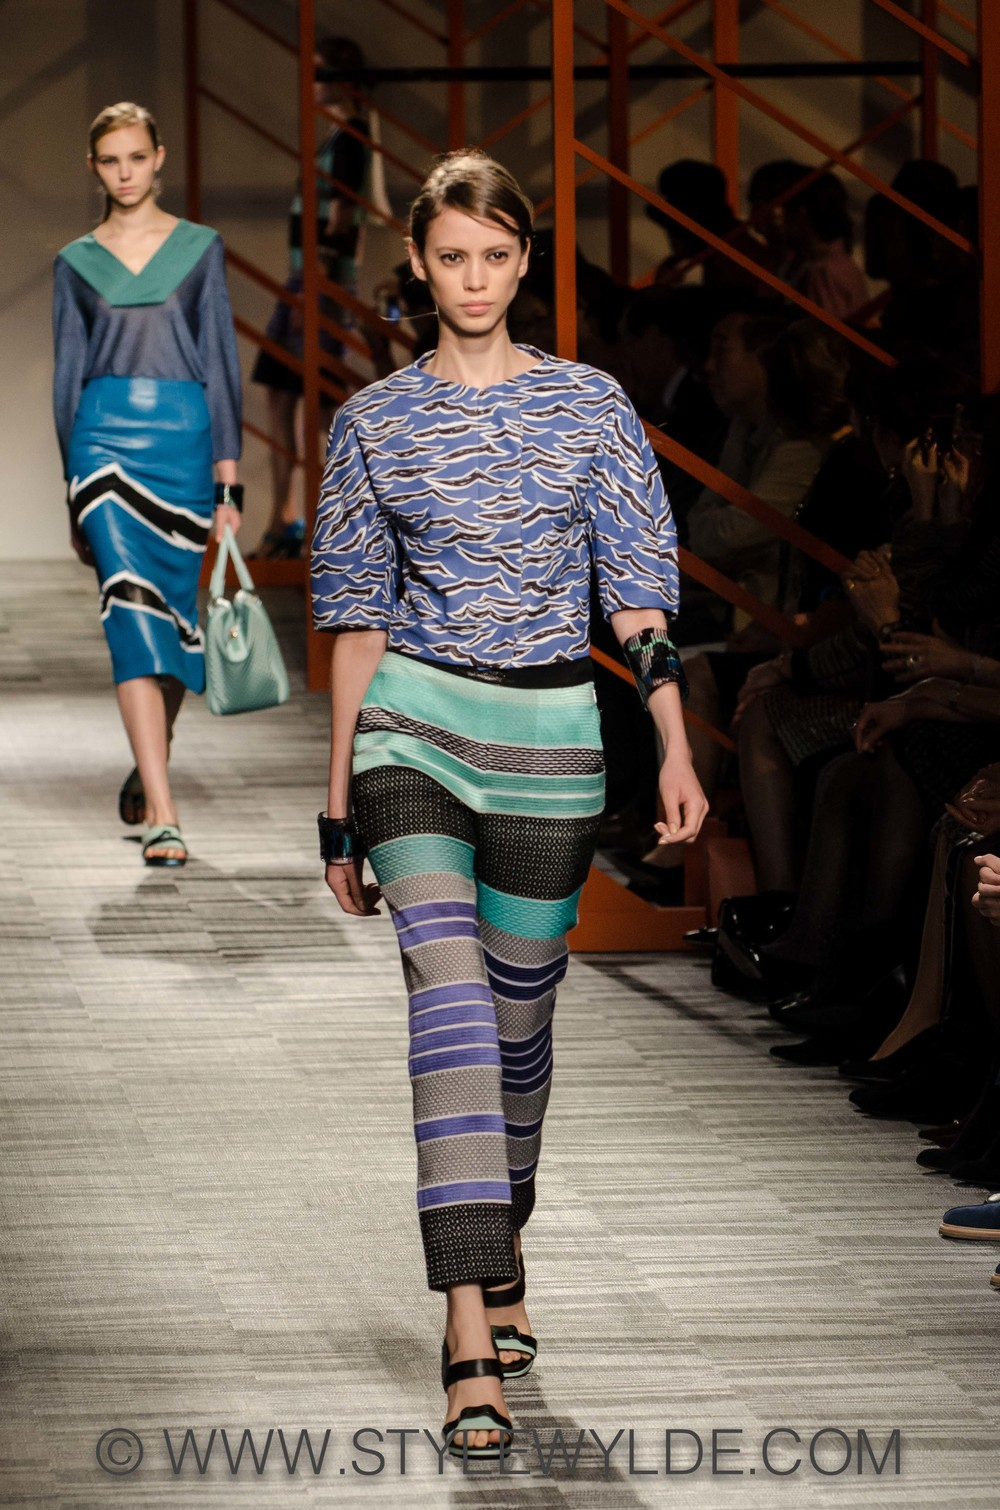 STYLEWYLDE_Missoni_SS2014 (1 of 1)-12.jpg